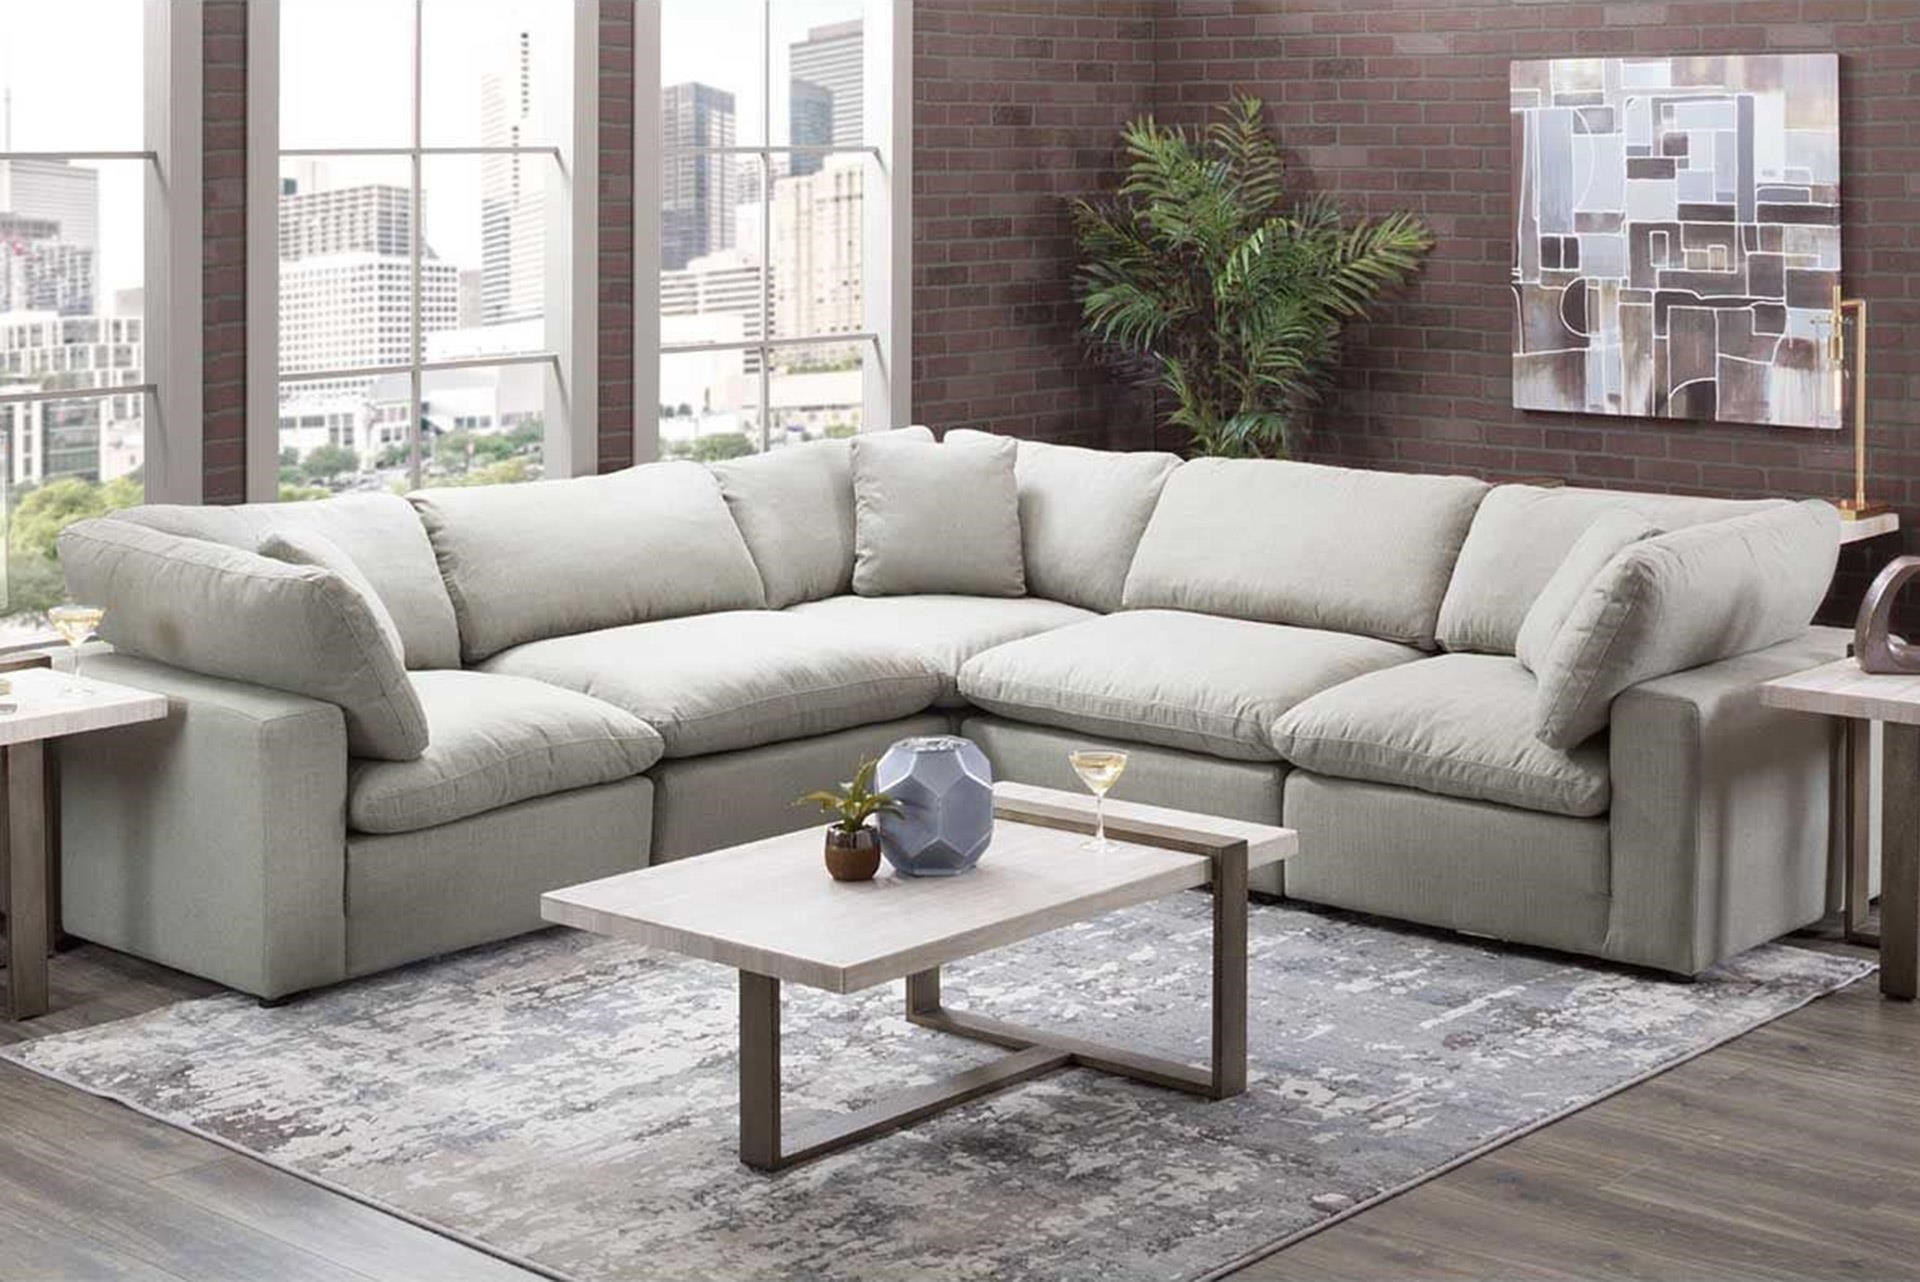 Grey Modular 5-Piece Sectional